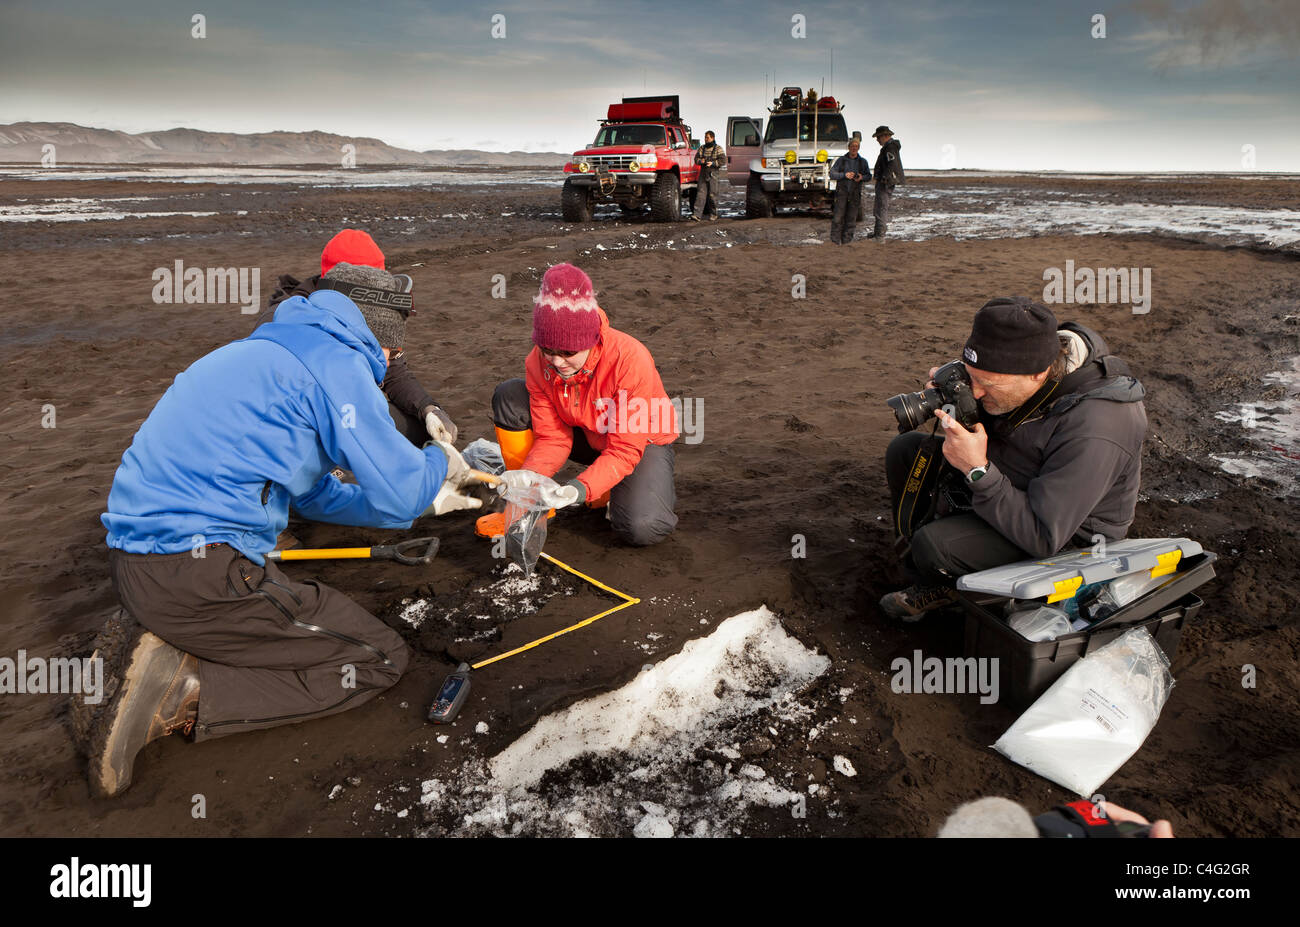 Scientist taking samples and measuring the ash fall from Grimsvotn volcanic eruption, Iceland - Stock Image